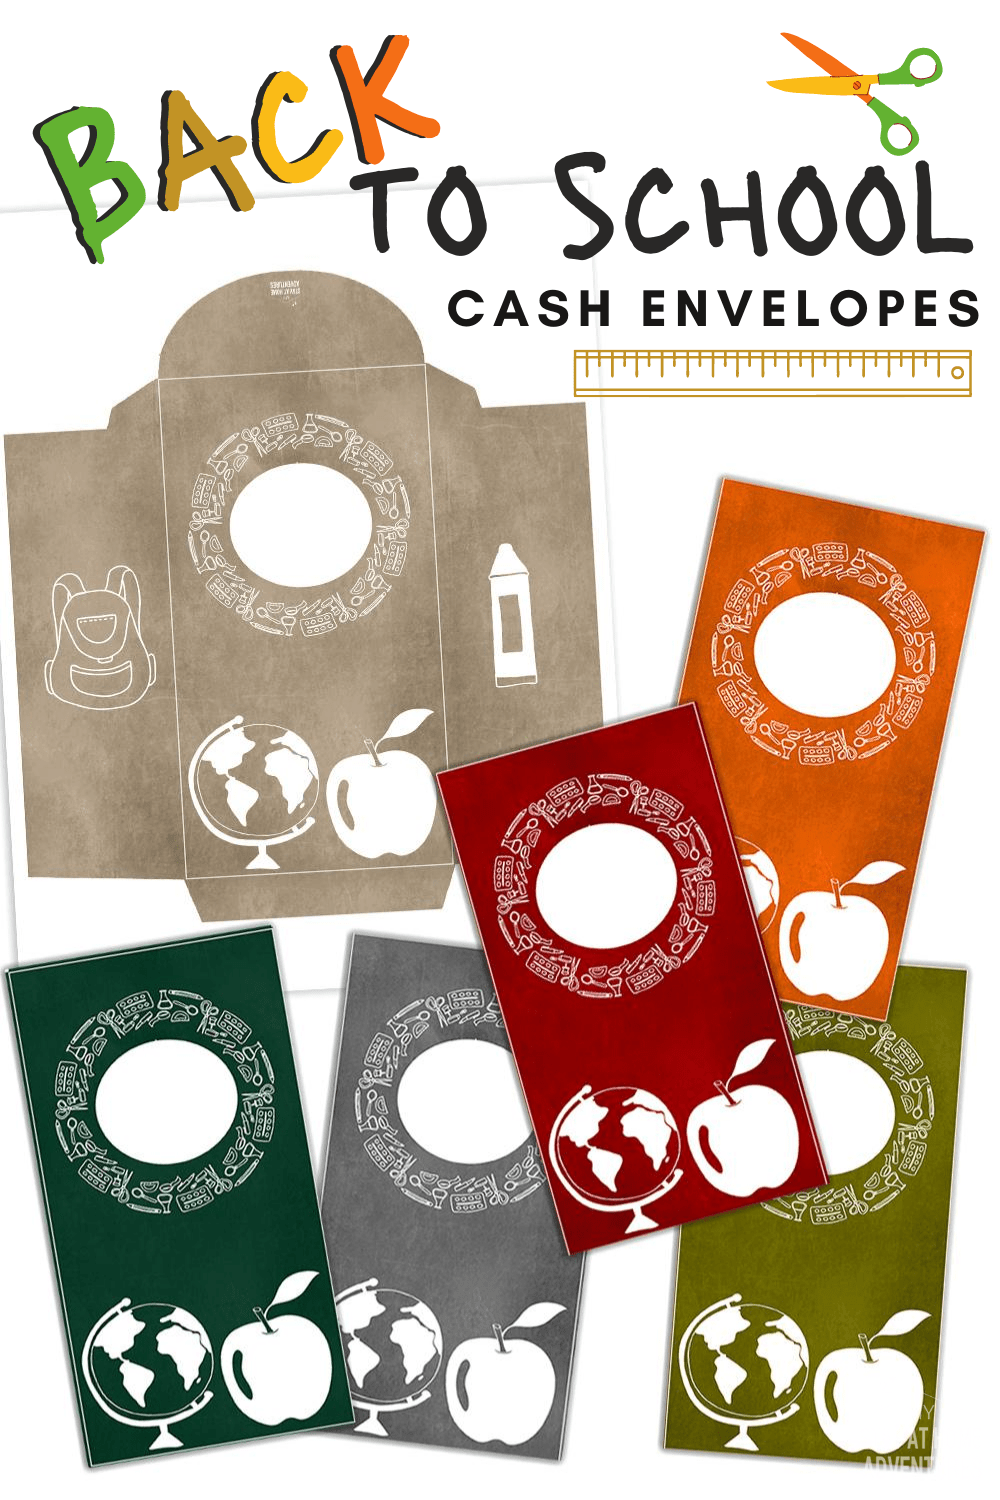 Cash budgeting doesn't have to be boring! Back to School cash envelopes are colorful and comes in two styles: horizontal cash envelopes and vertical envelopes. #cashenvelopes #cashenvelopeprintables #cashbudgeting via @mystayathome